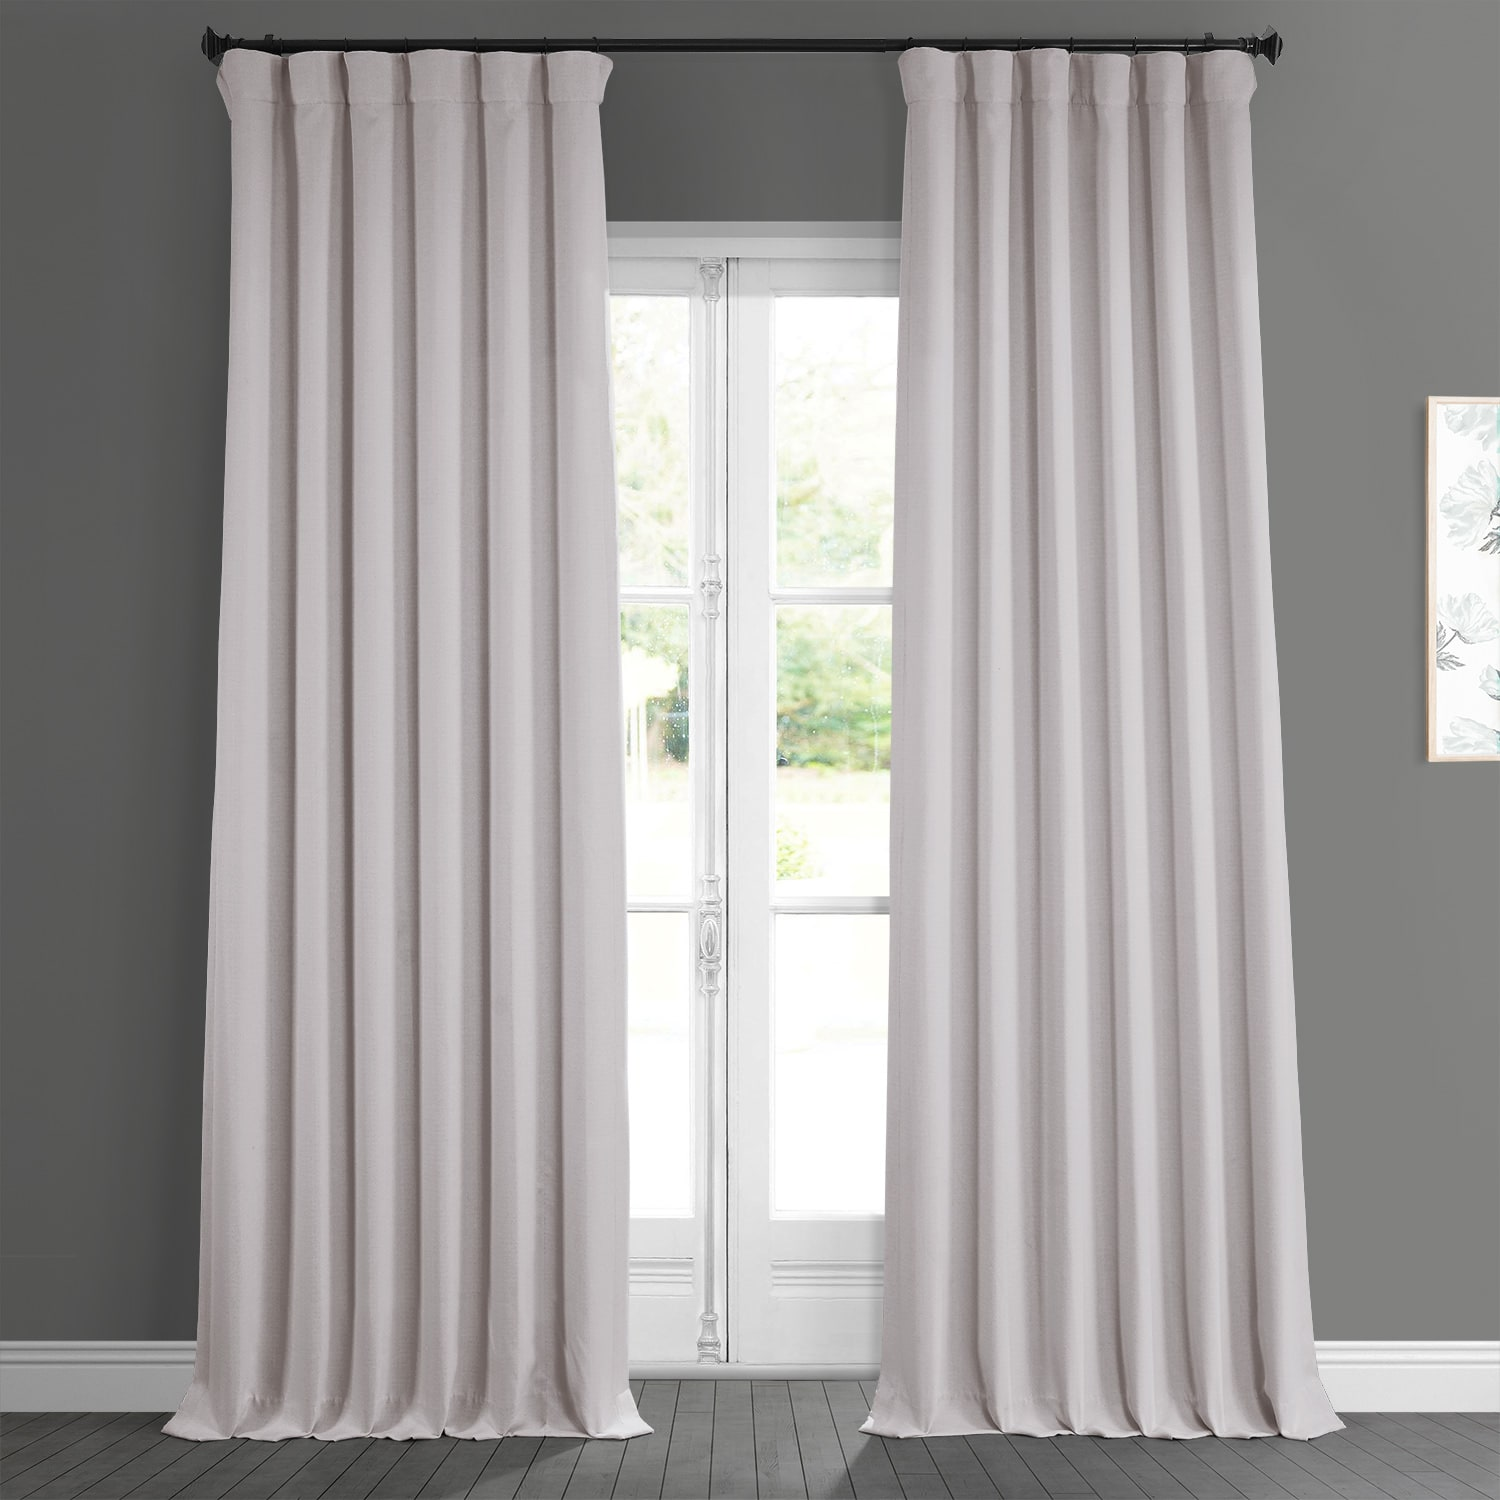 Birch Faux Linen Blackout Room Darkening Curtain